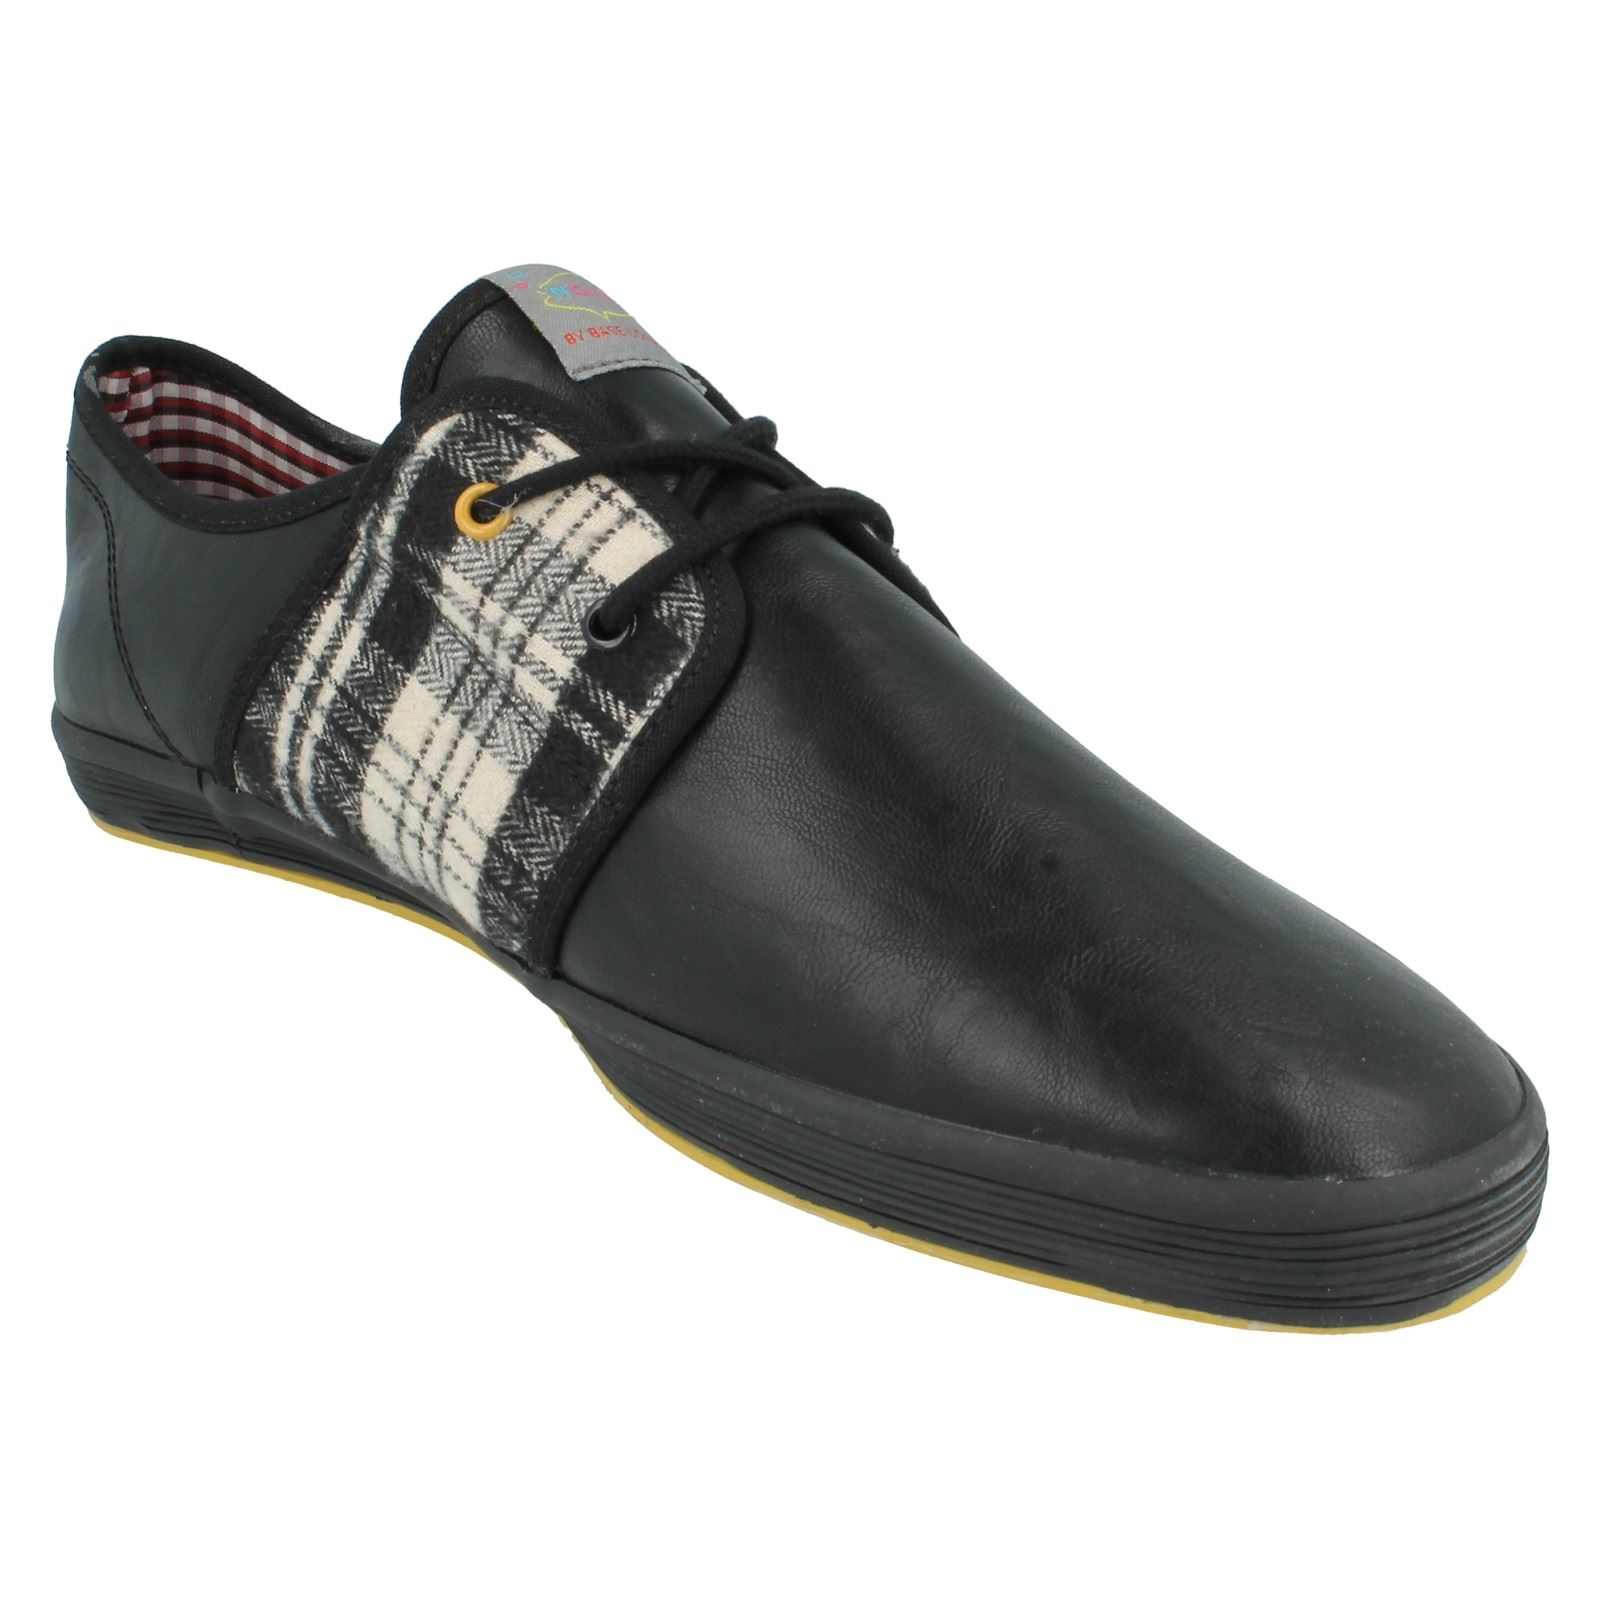 Mens base london fish 39 n chips shoes style spam 2 ebay for Fish n style